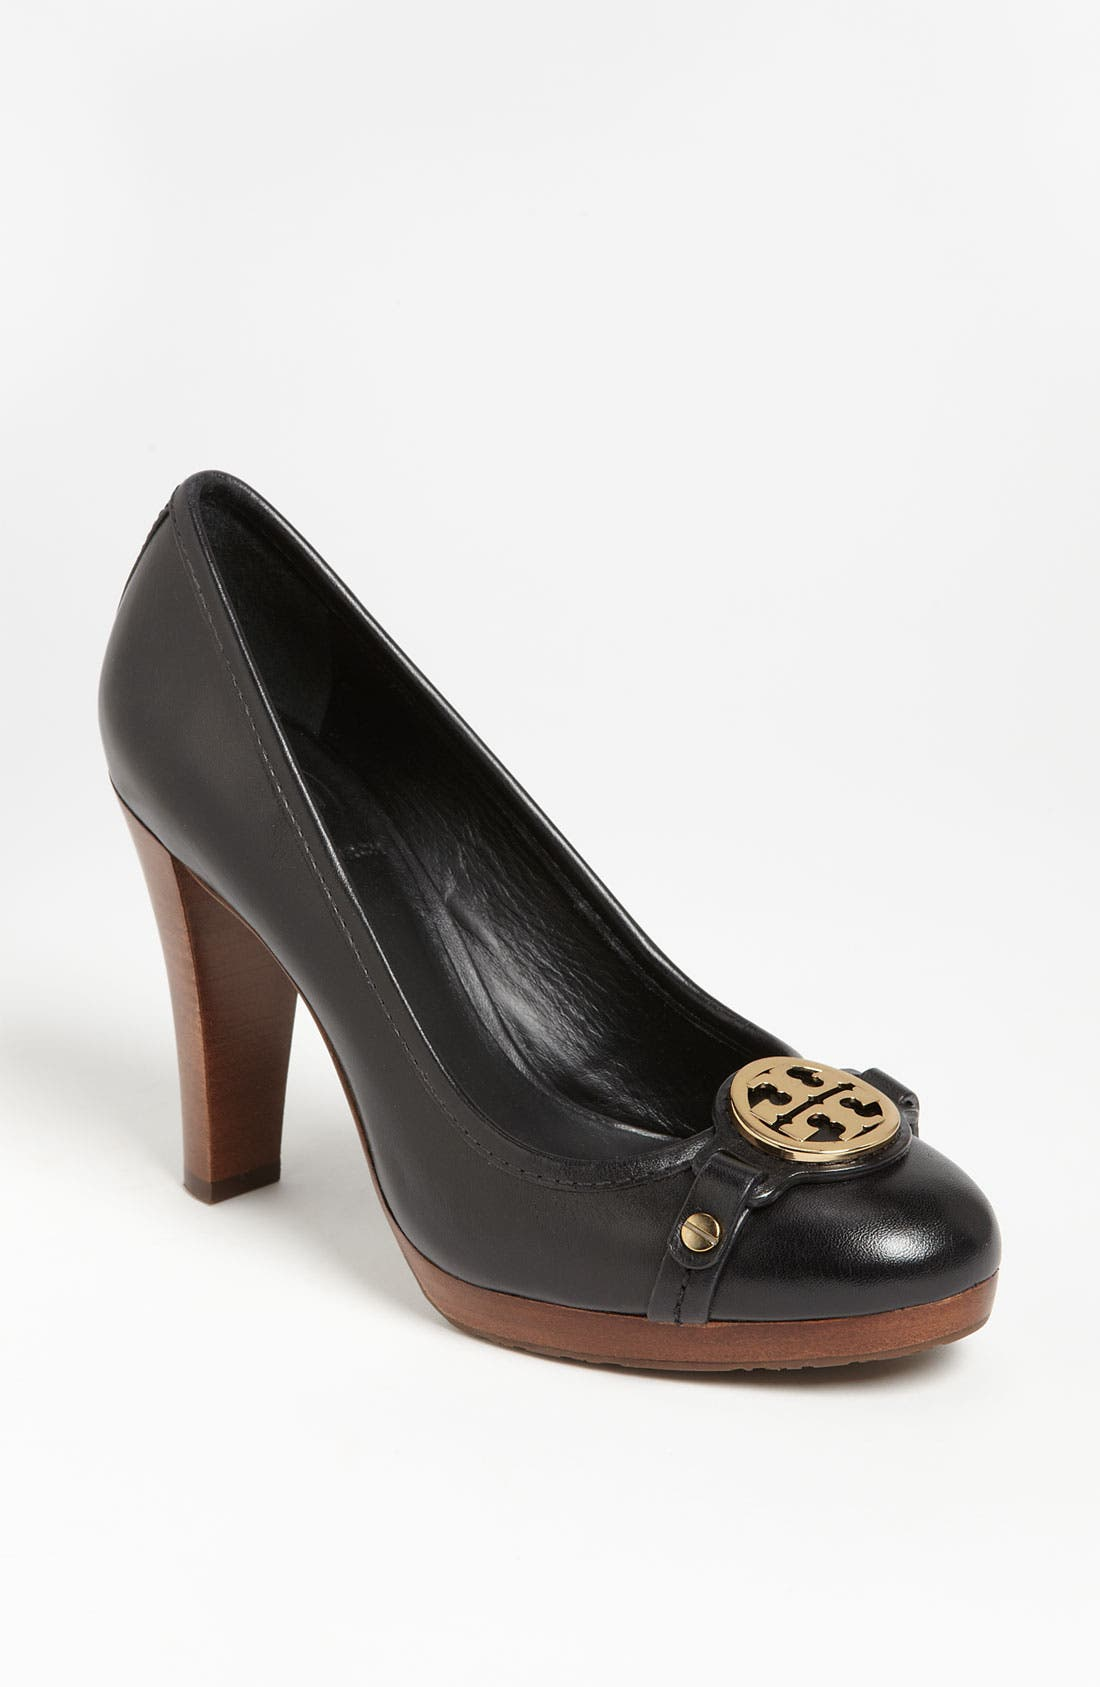 Alternate Image 1 Selected - Tory Burch 'Calista' Pump